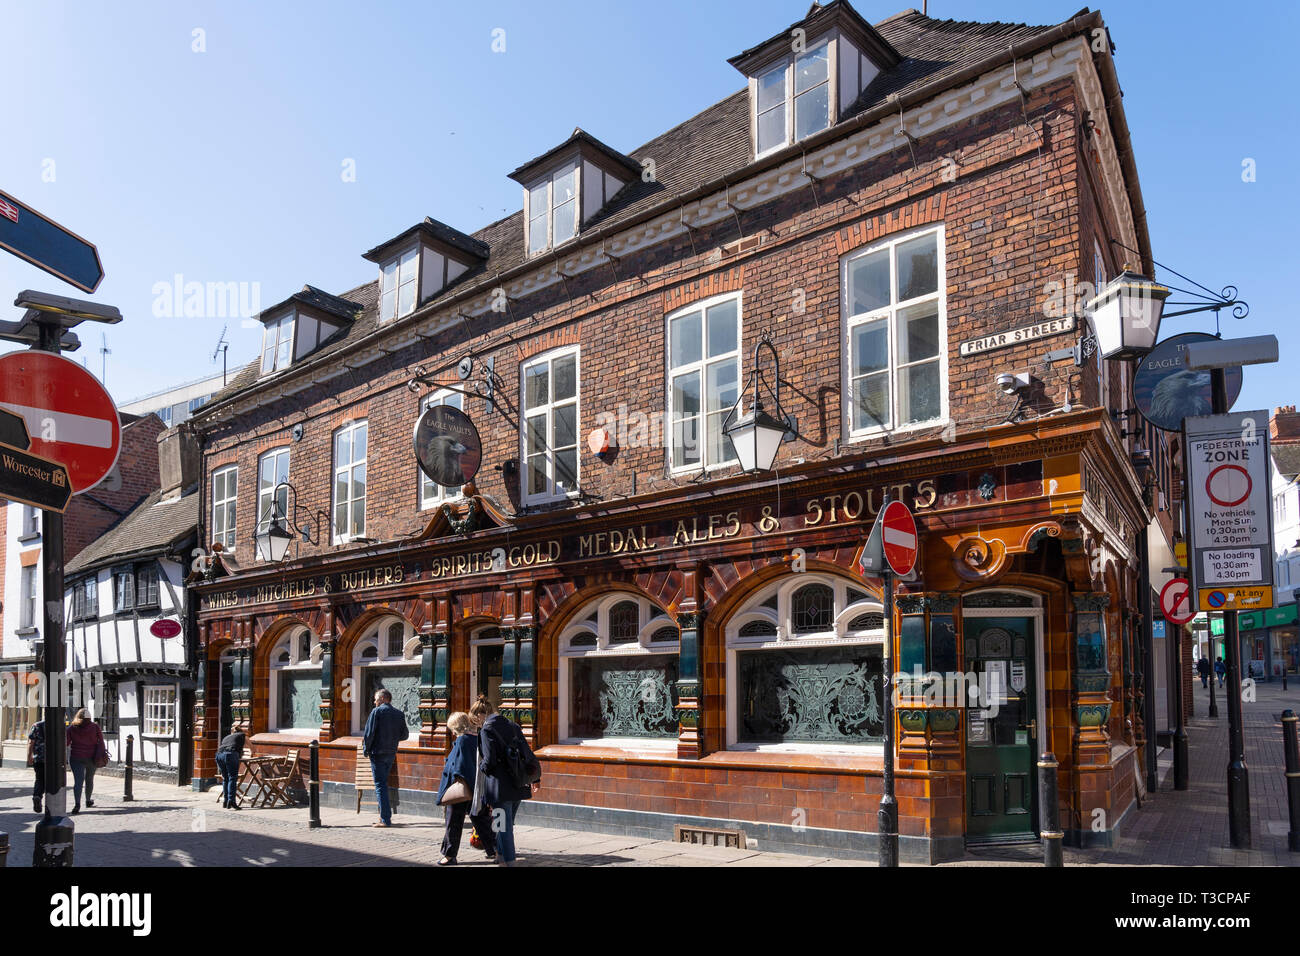 The Eagle Vaults Public House is a traditional local and a Grade II listed building with a tiled facade and etched windows in Worcester, England - Stock Image